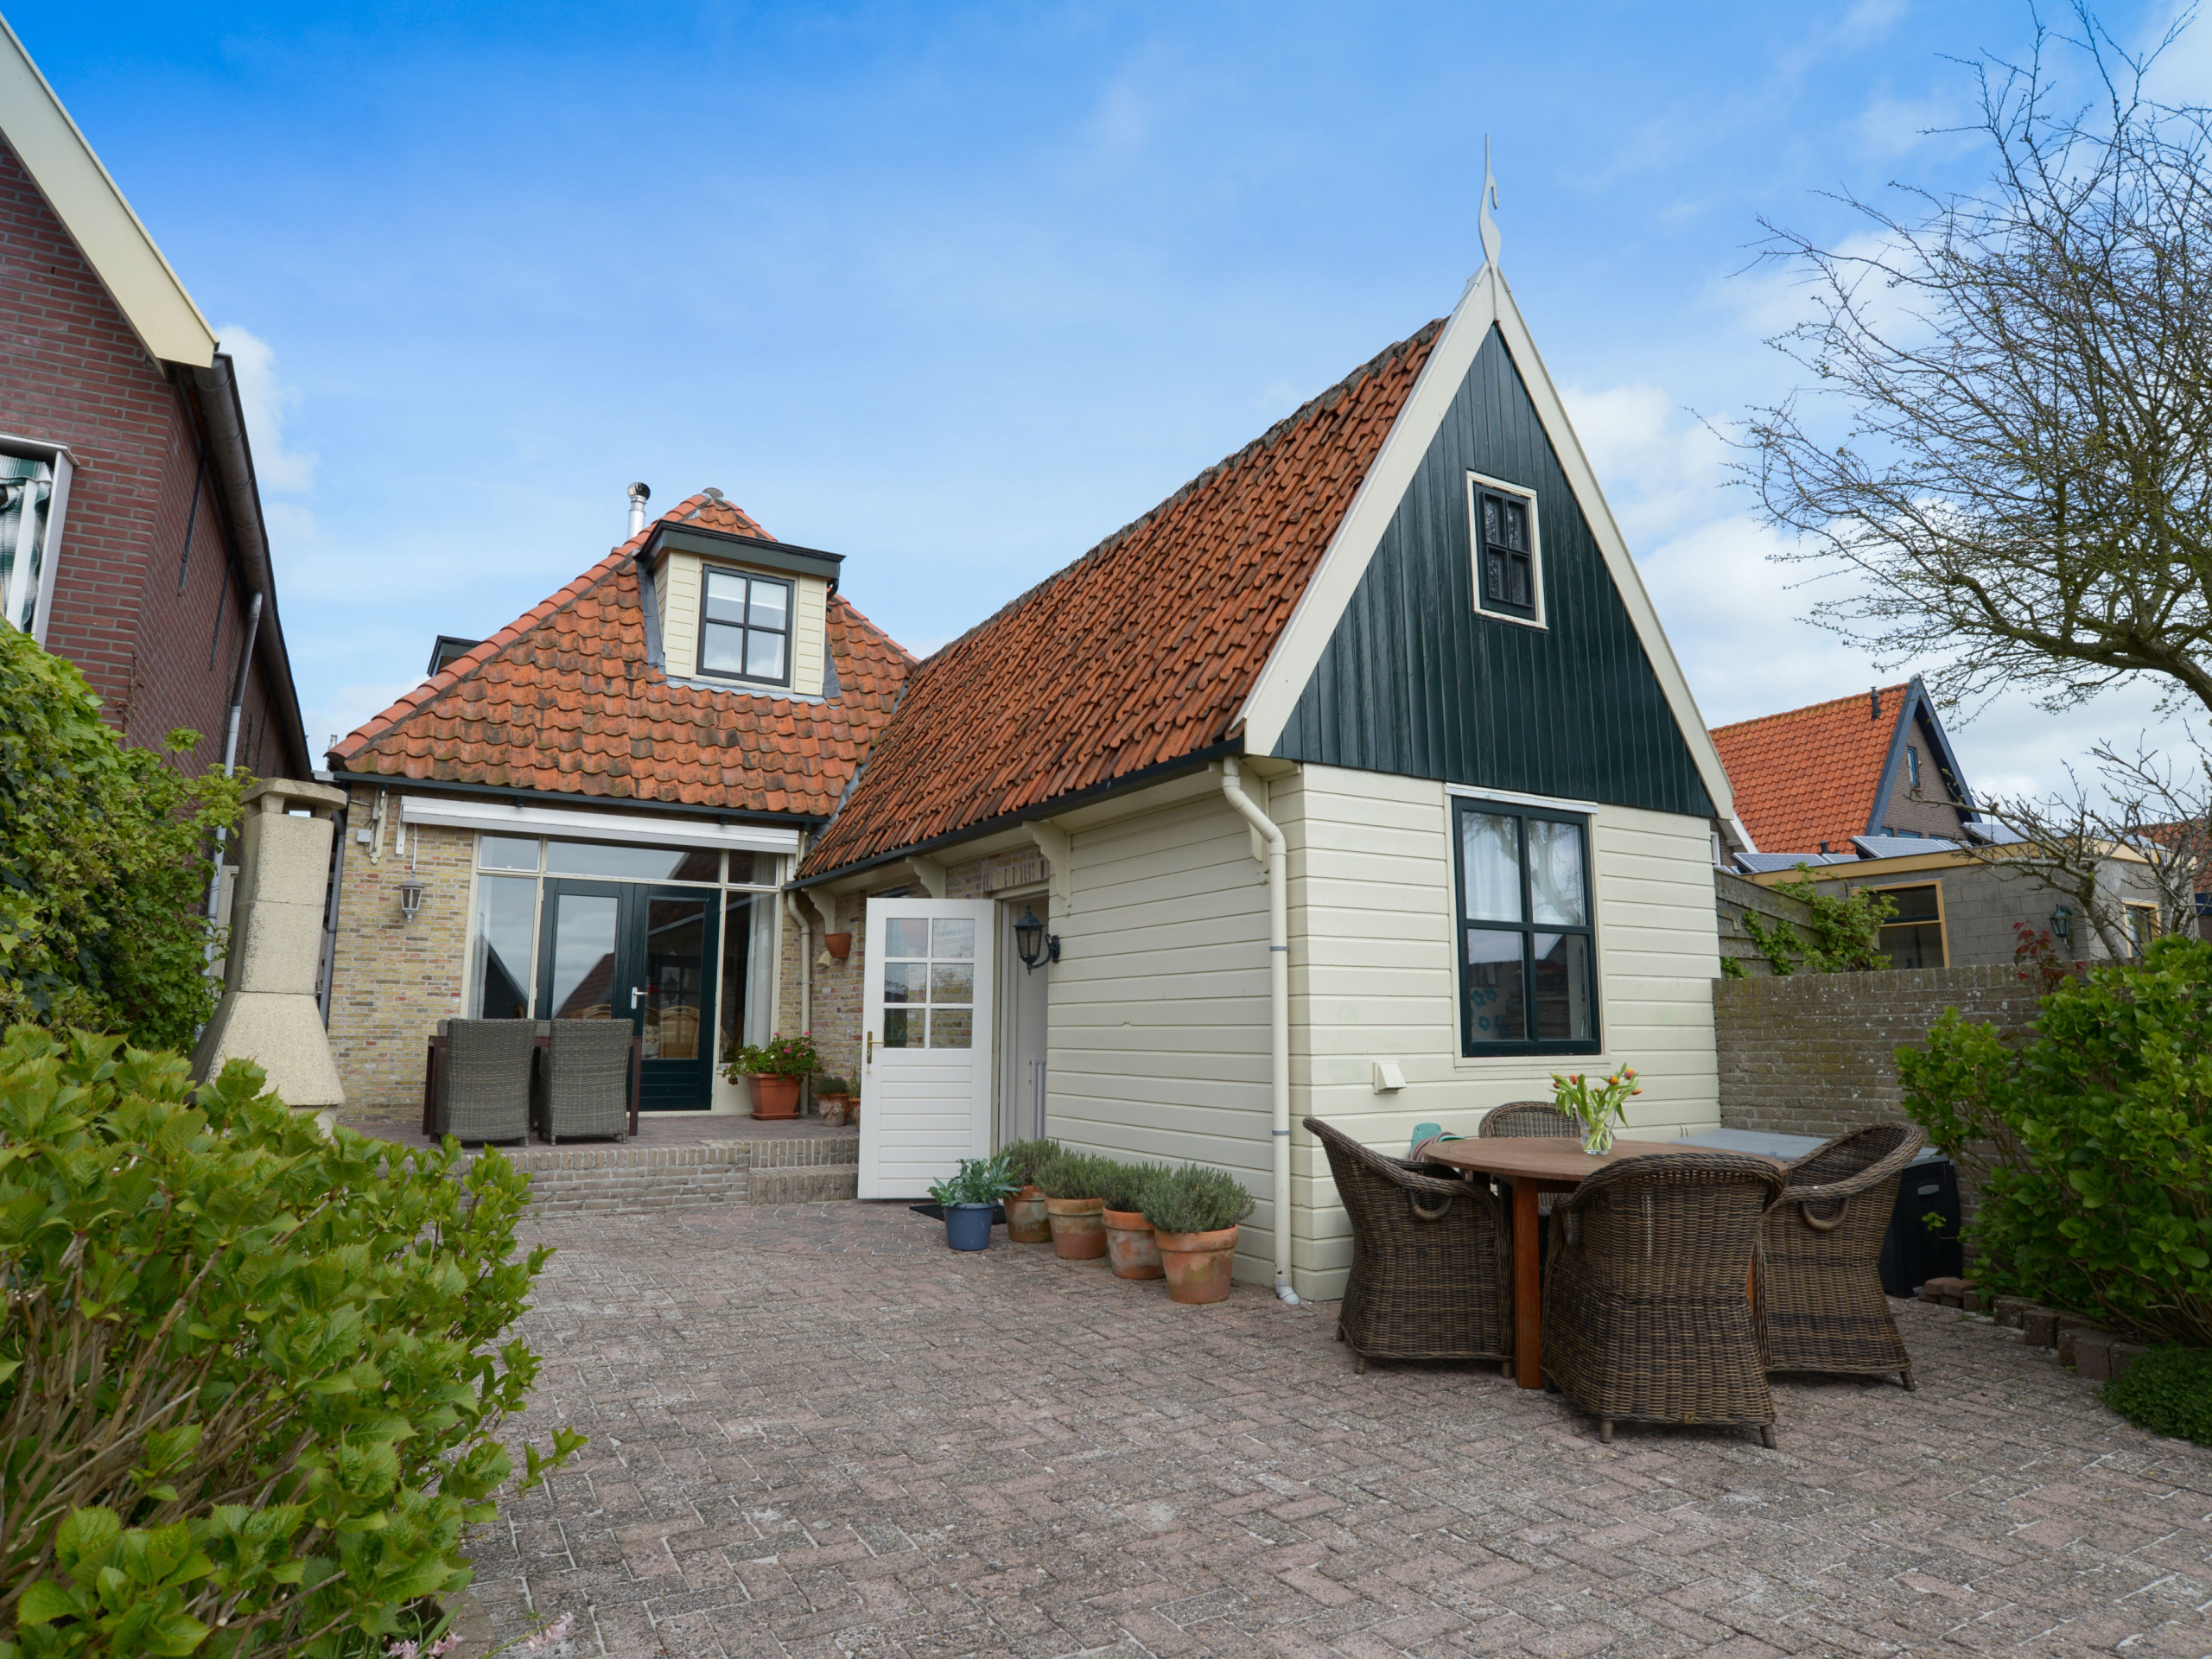 Attractive authentic holiday home in the picturesque Den Hoorn